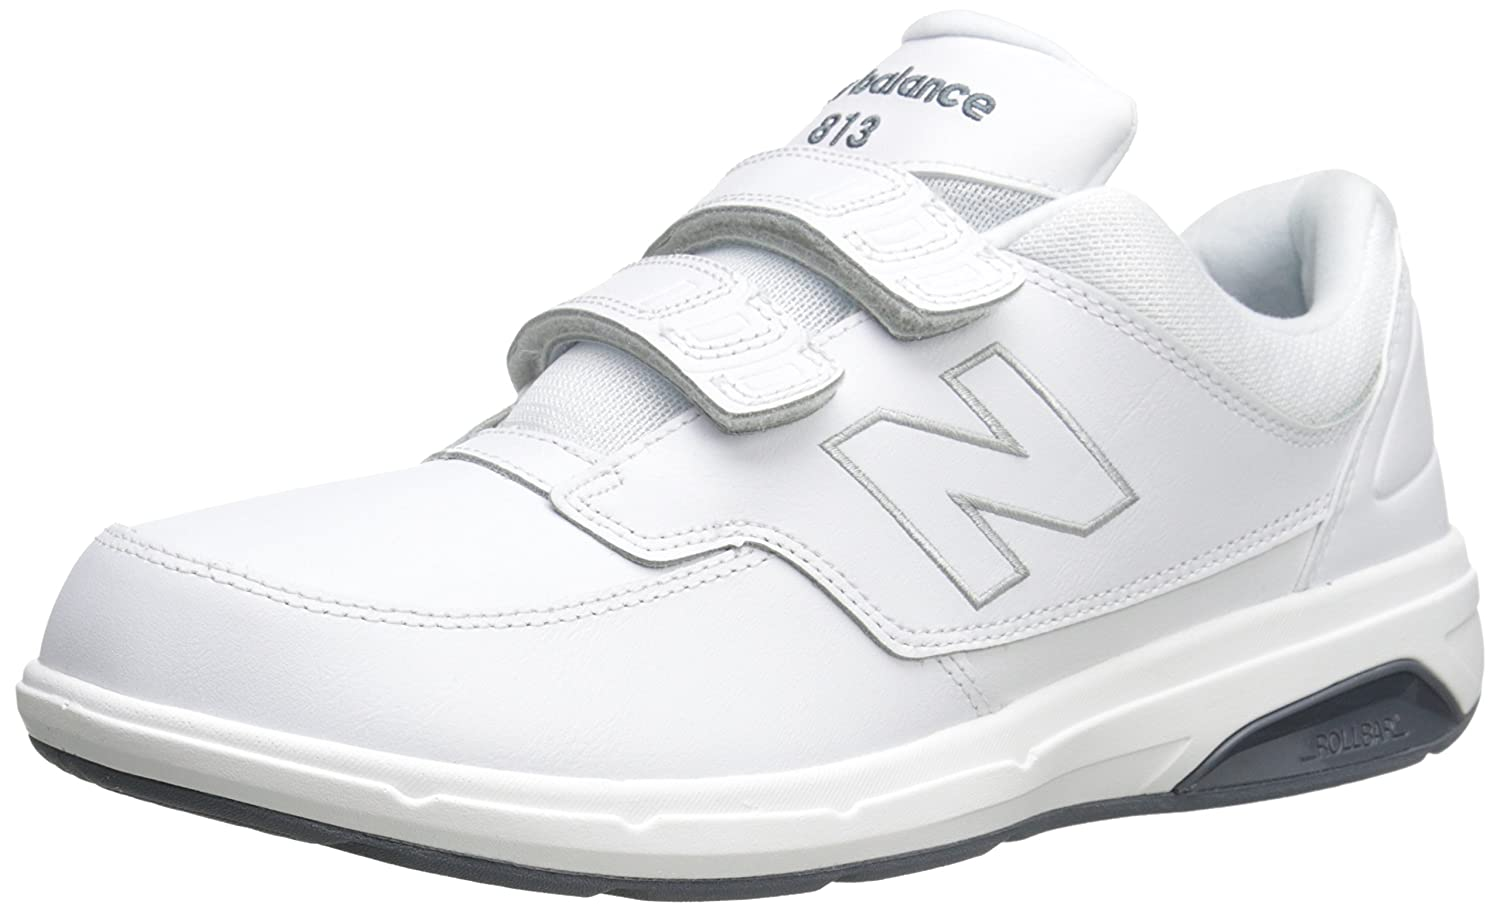 New Balance Men's MW813V1 Hook and Loop Walking Shoe 11 D(M) US|White